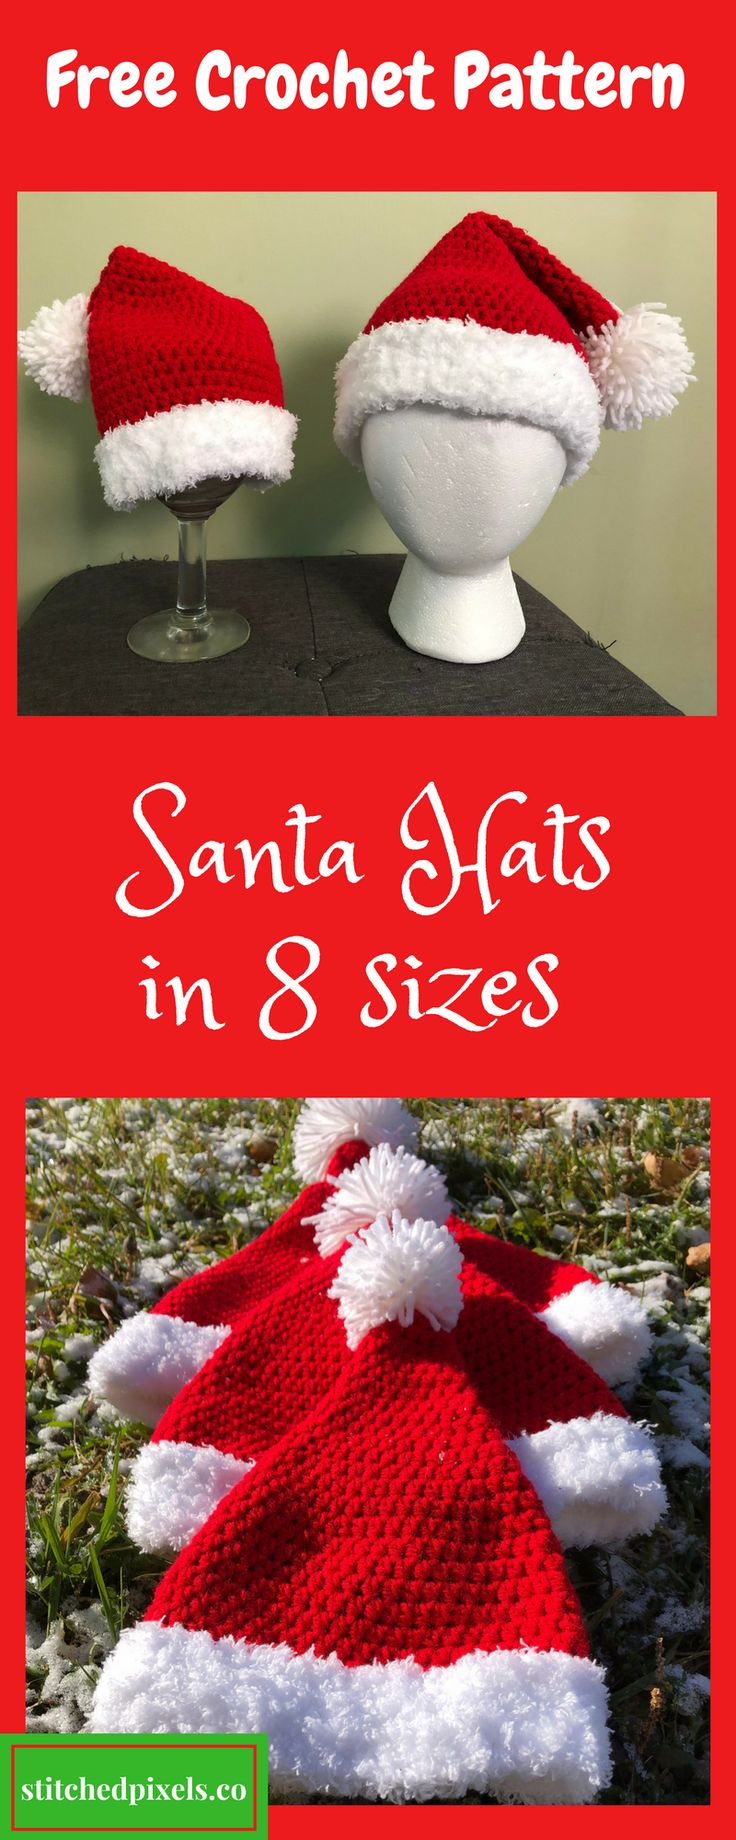 Use this free crochet pattern to make your own Santa Hat in a variety of sizes.